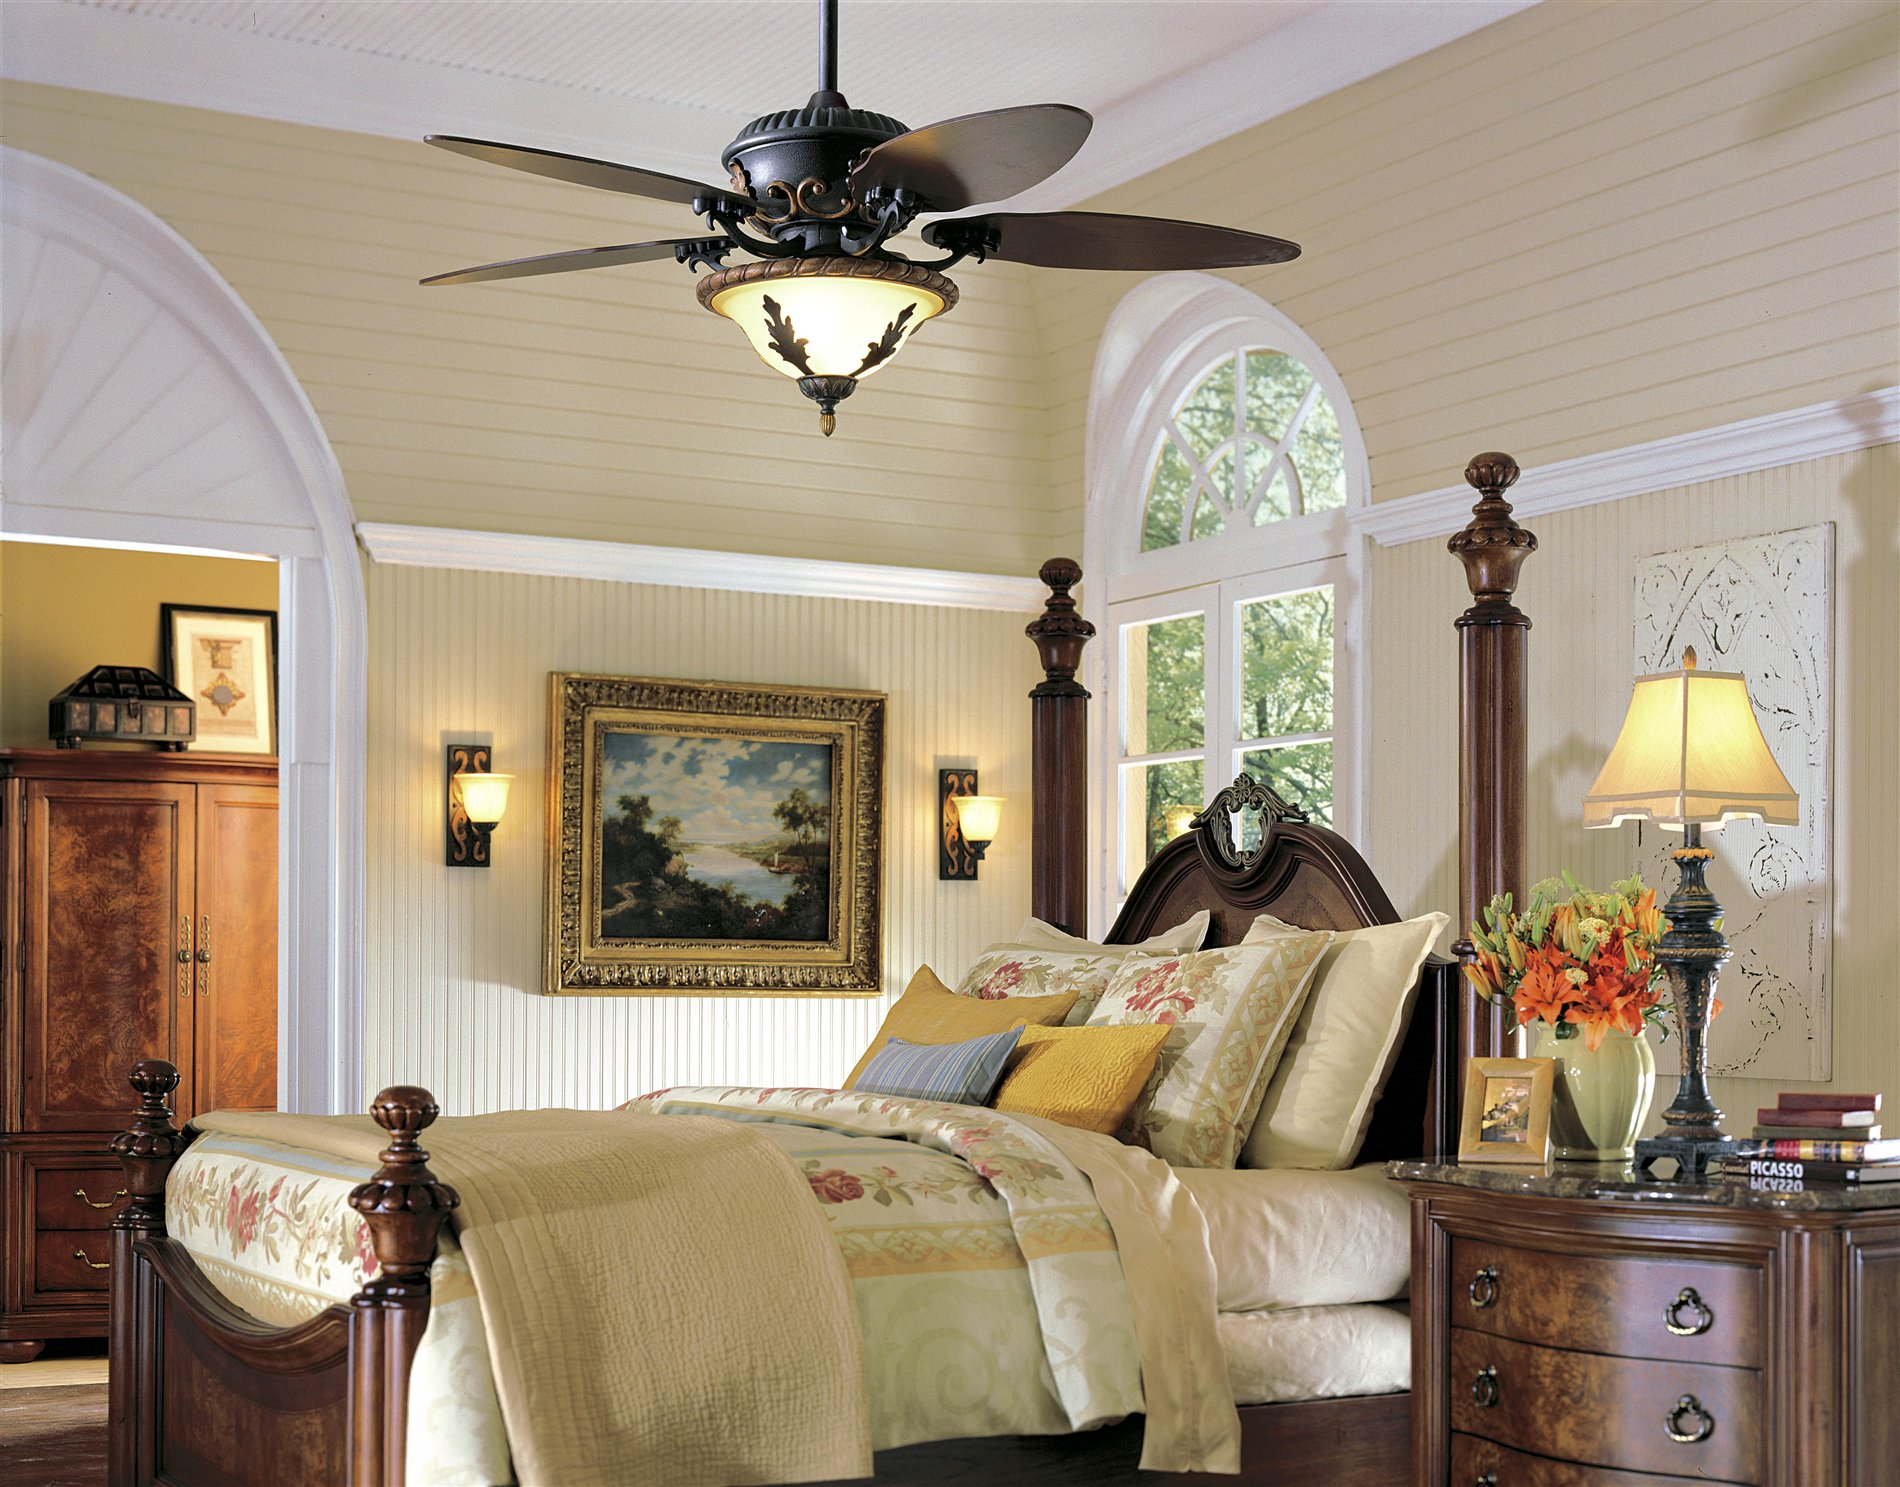 create a cooling effect with ceiling fan - darbylanefurniture